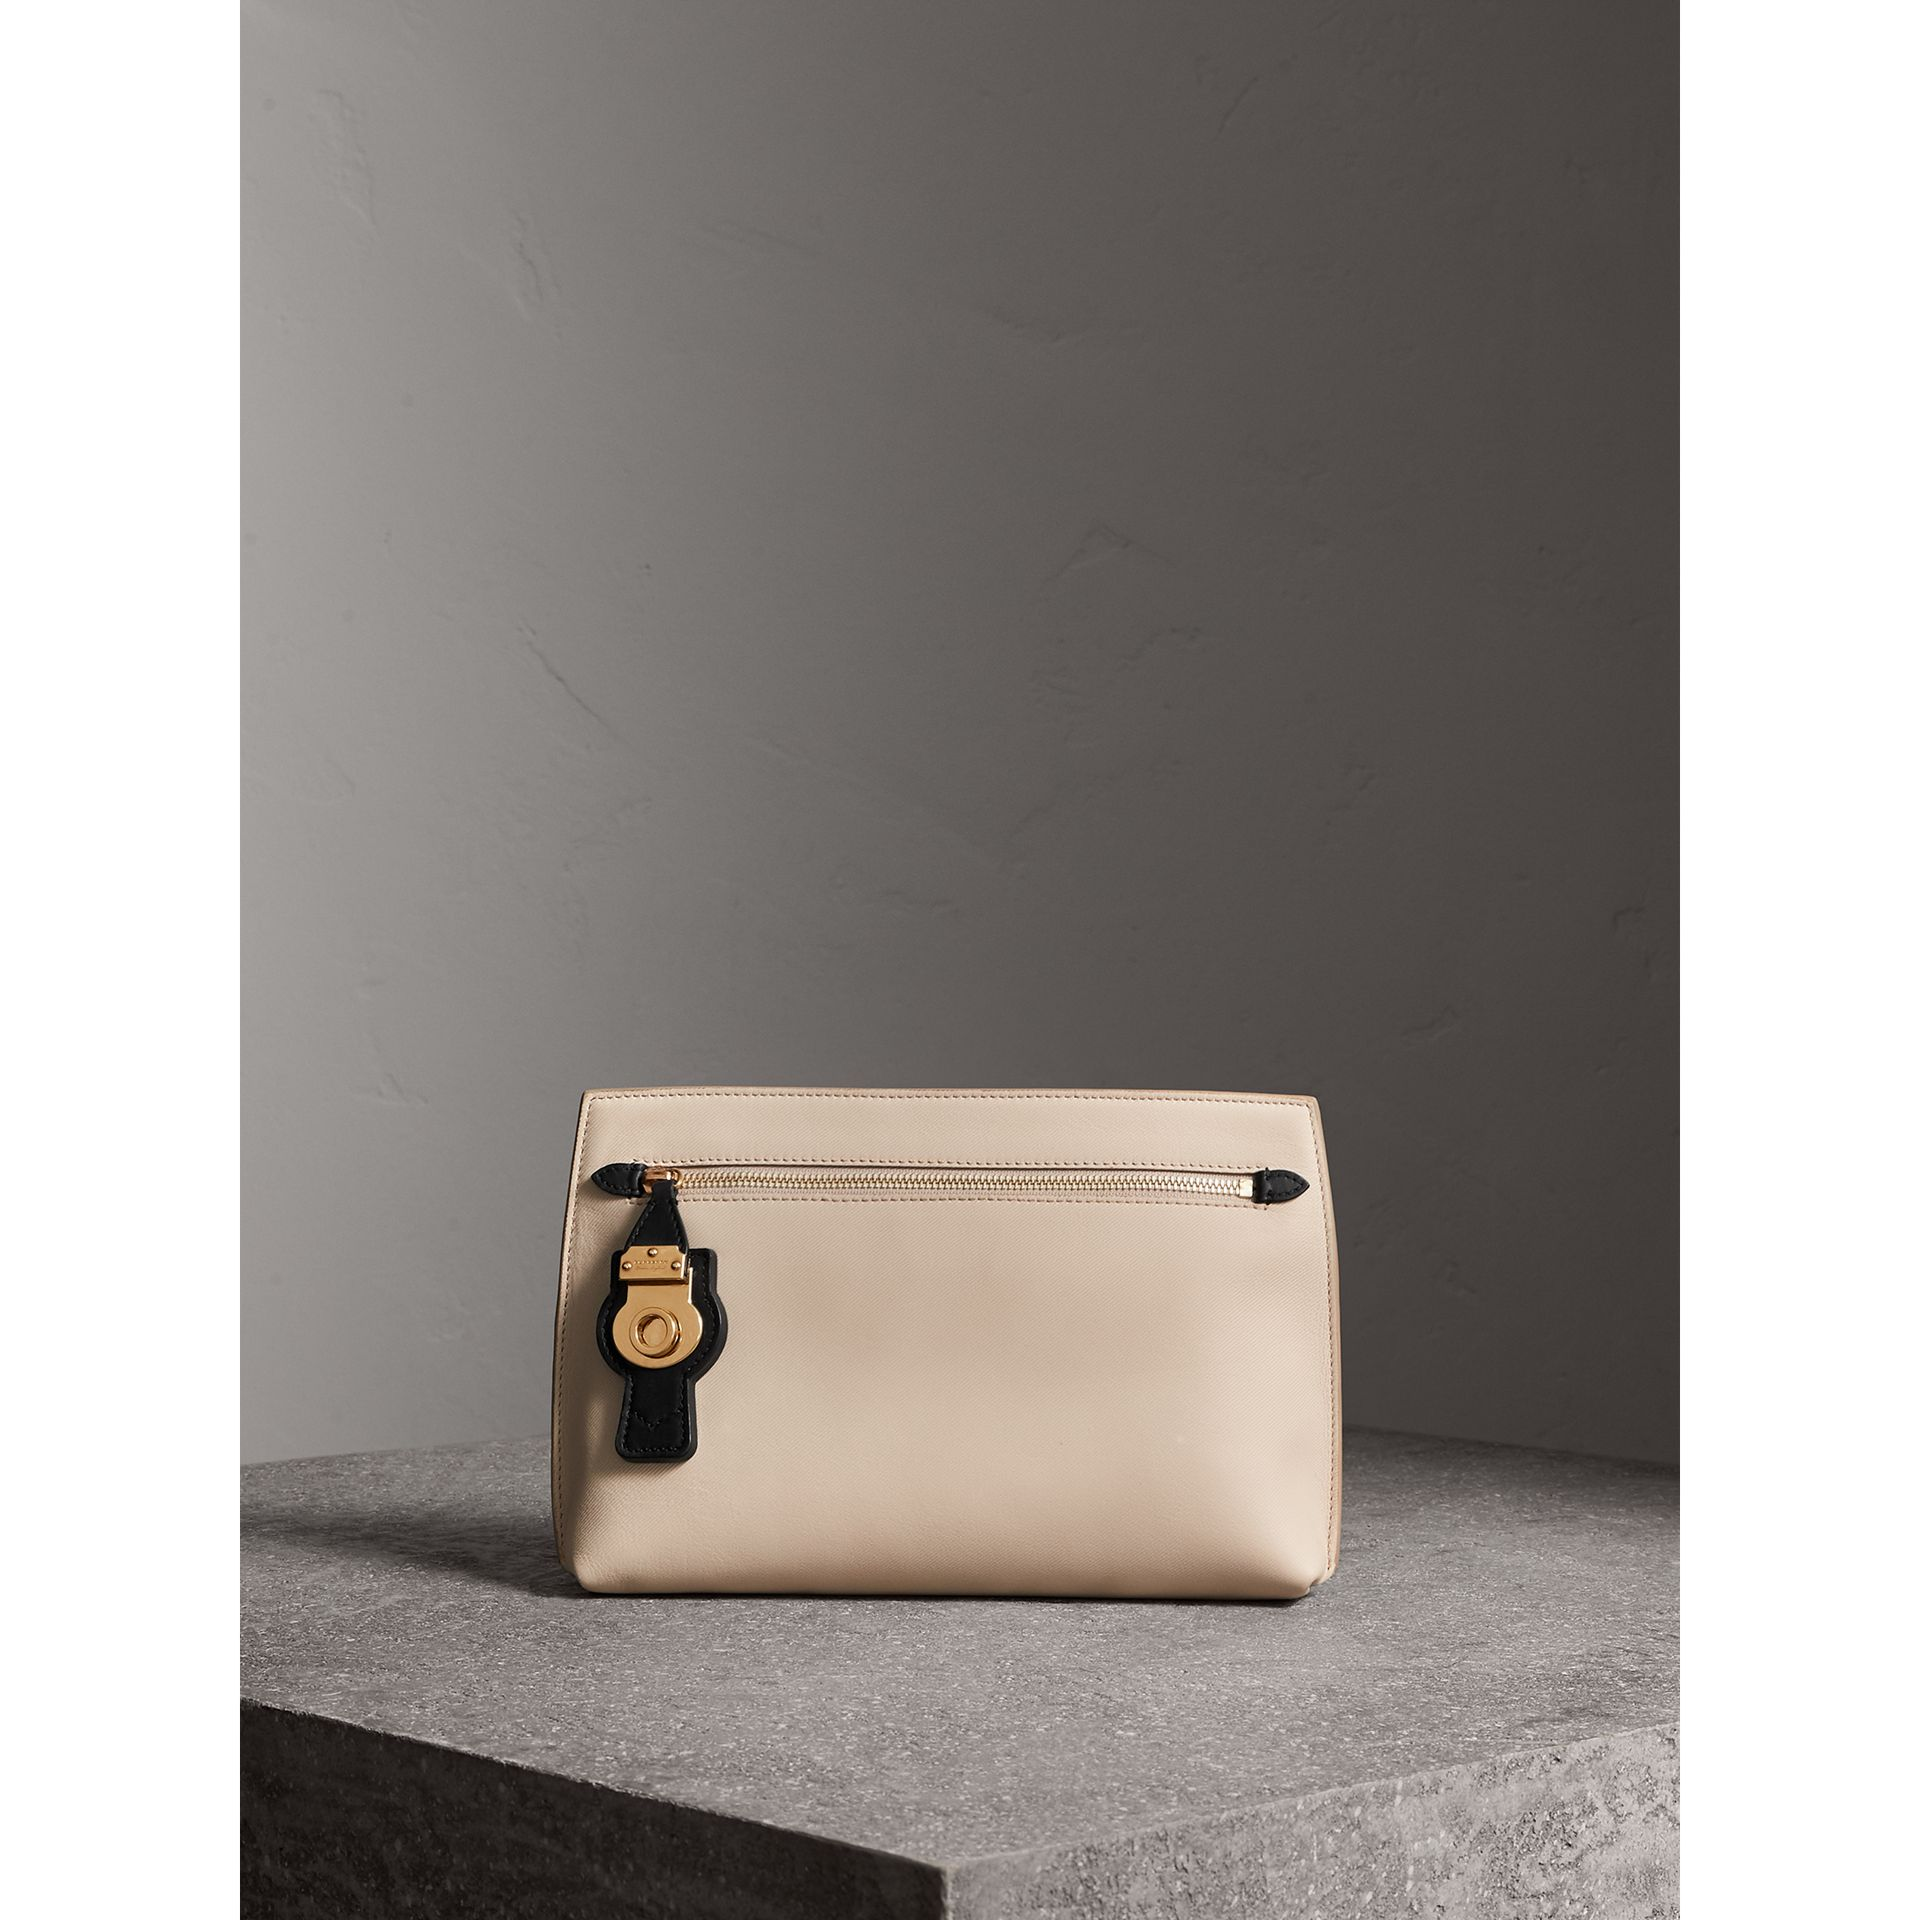 Two-tone Trench Leather Wristlet Pouch in Limestone/black - Women | Burberry - gallery image 0